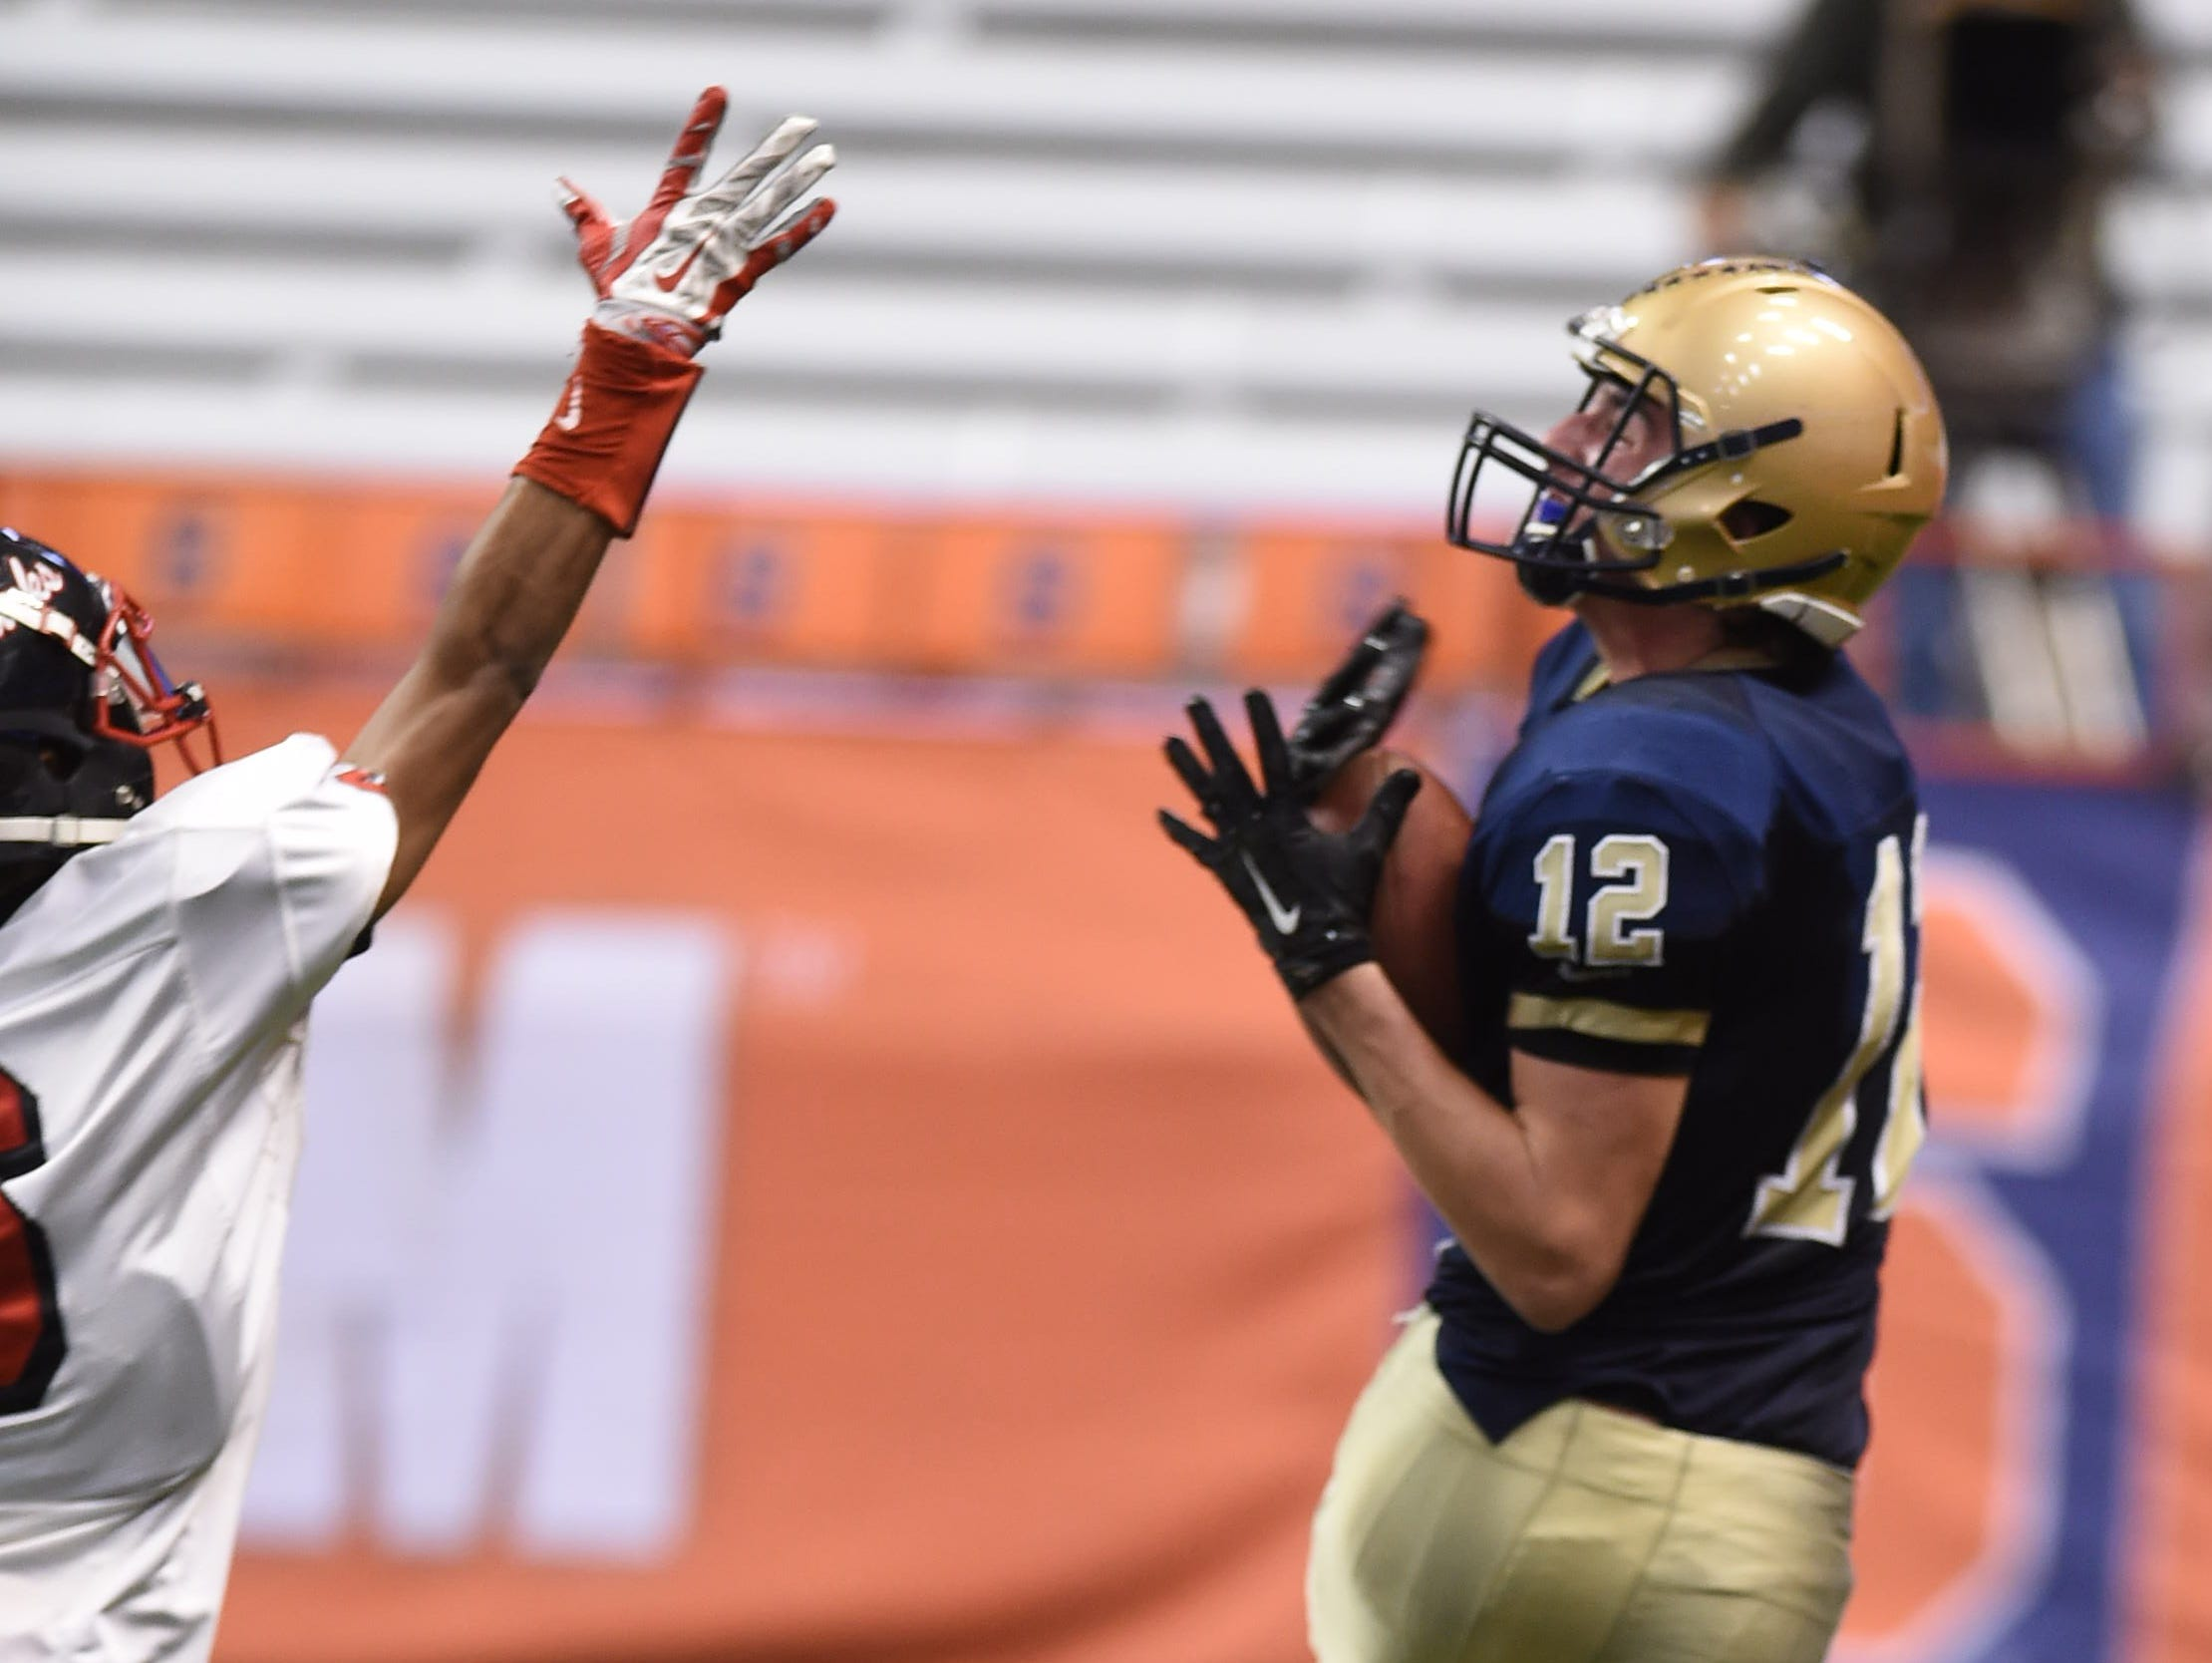 Lourdes' Luke Timm catches the ball during the New York State Championship final versus South Park in Syracuse on Friday.